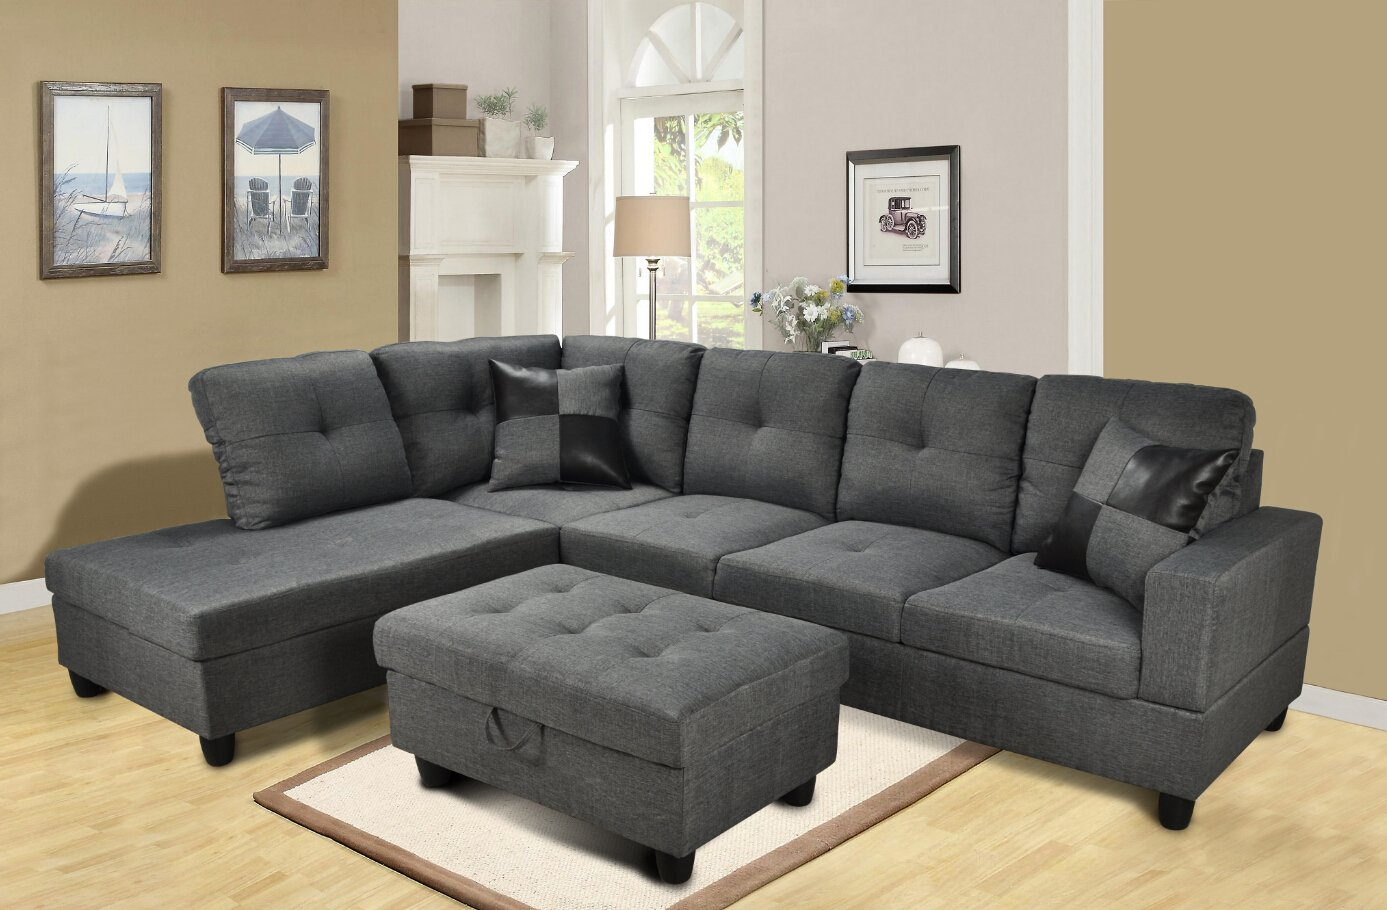 Amazon.com: Beverly Furniture 3 Piece Microfiber And Faux Leather  Upholstery Right Facing Sectional Sofa Set With Storage Ottoman, Gray:  Kitchen U0026 Dining